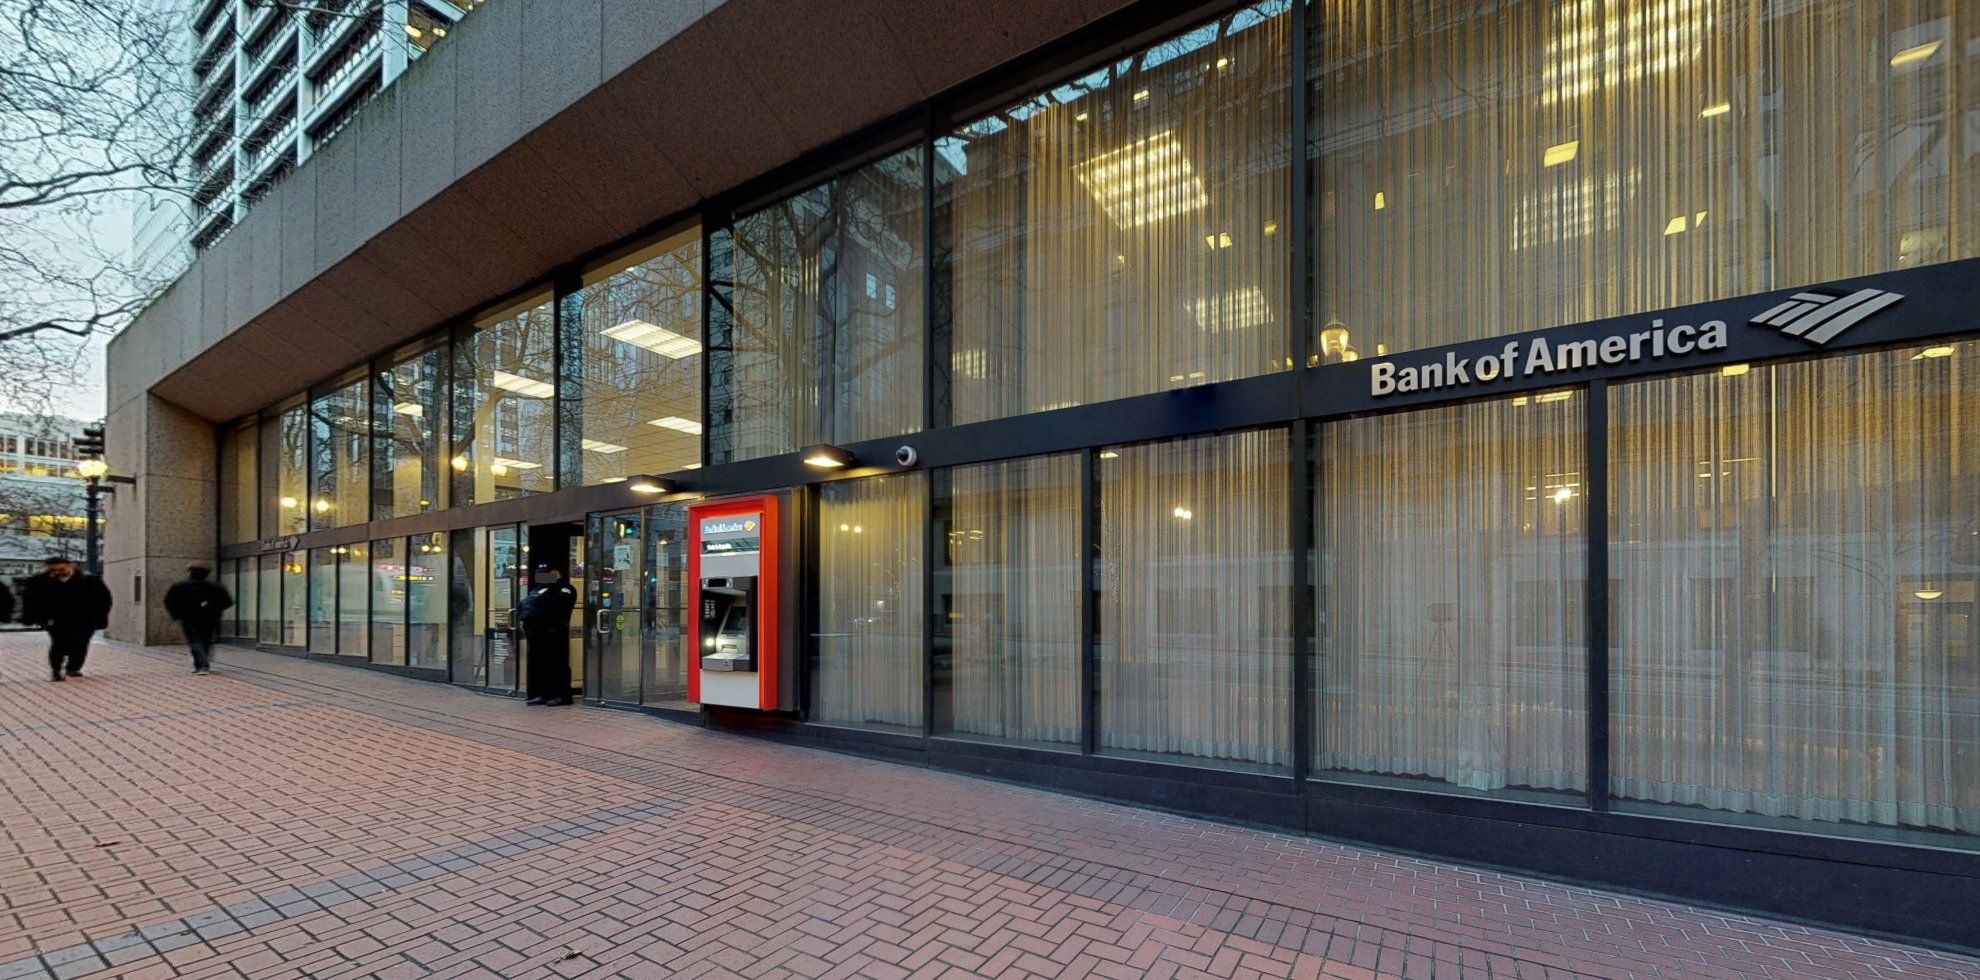 Bank of America financial center with walk-up ATM | 1001 SW 5th Ave, Portland, OR 97204